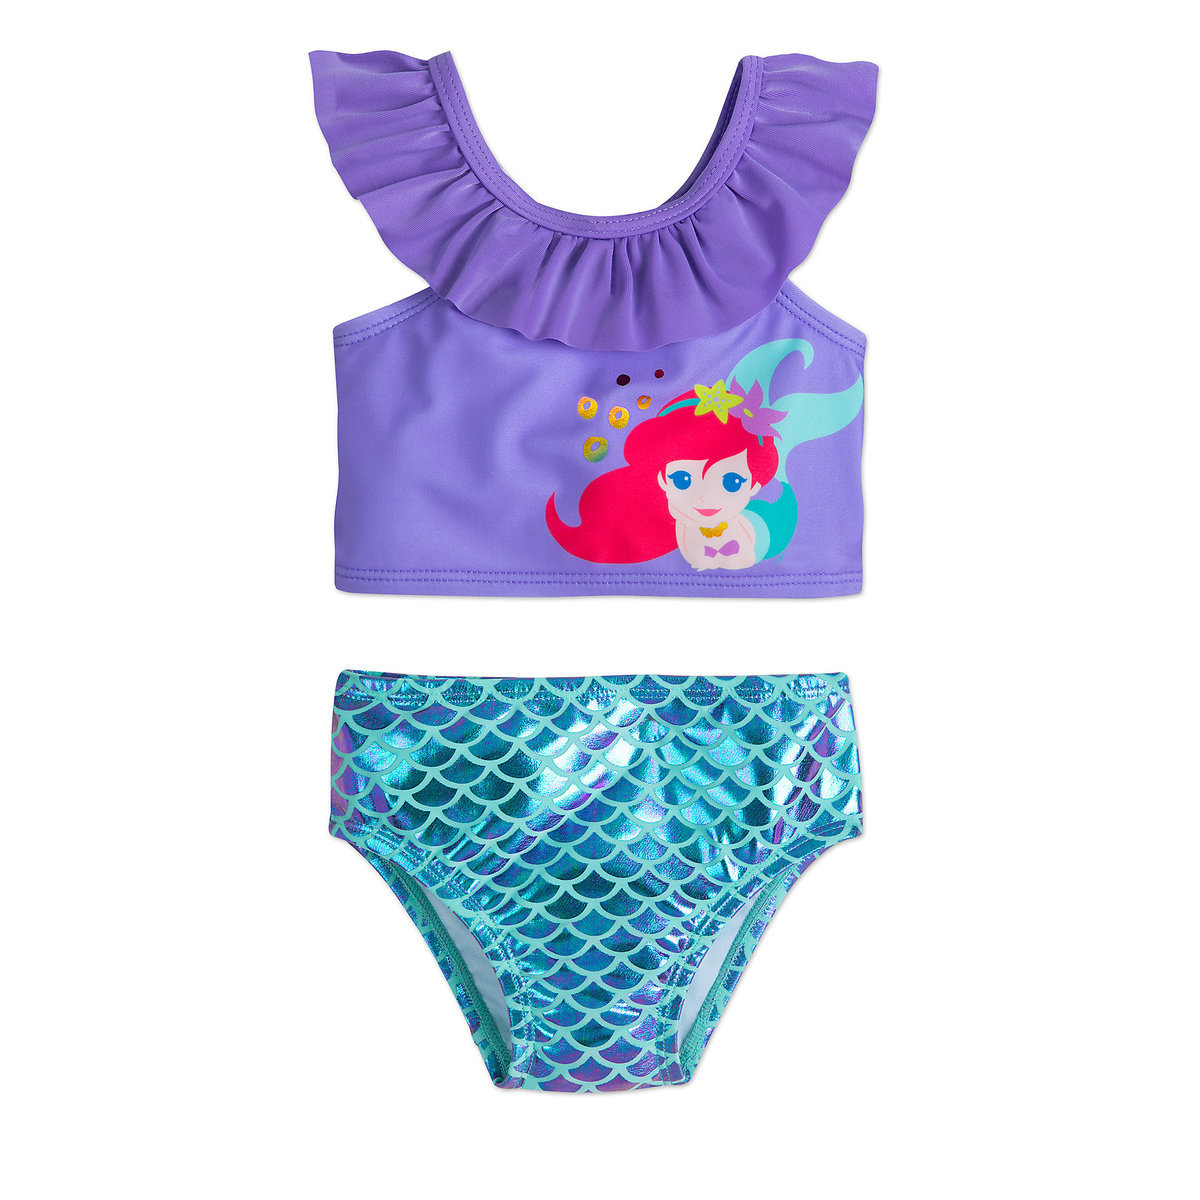 f913d5eb91180 Product Image of Ariel Two-Piece Swimsuit for Baby - The Little Mermaid # 1